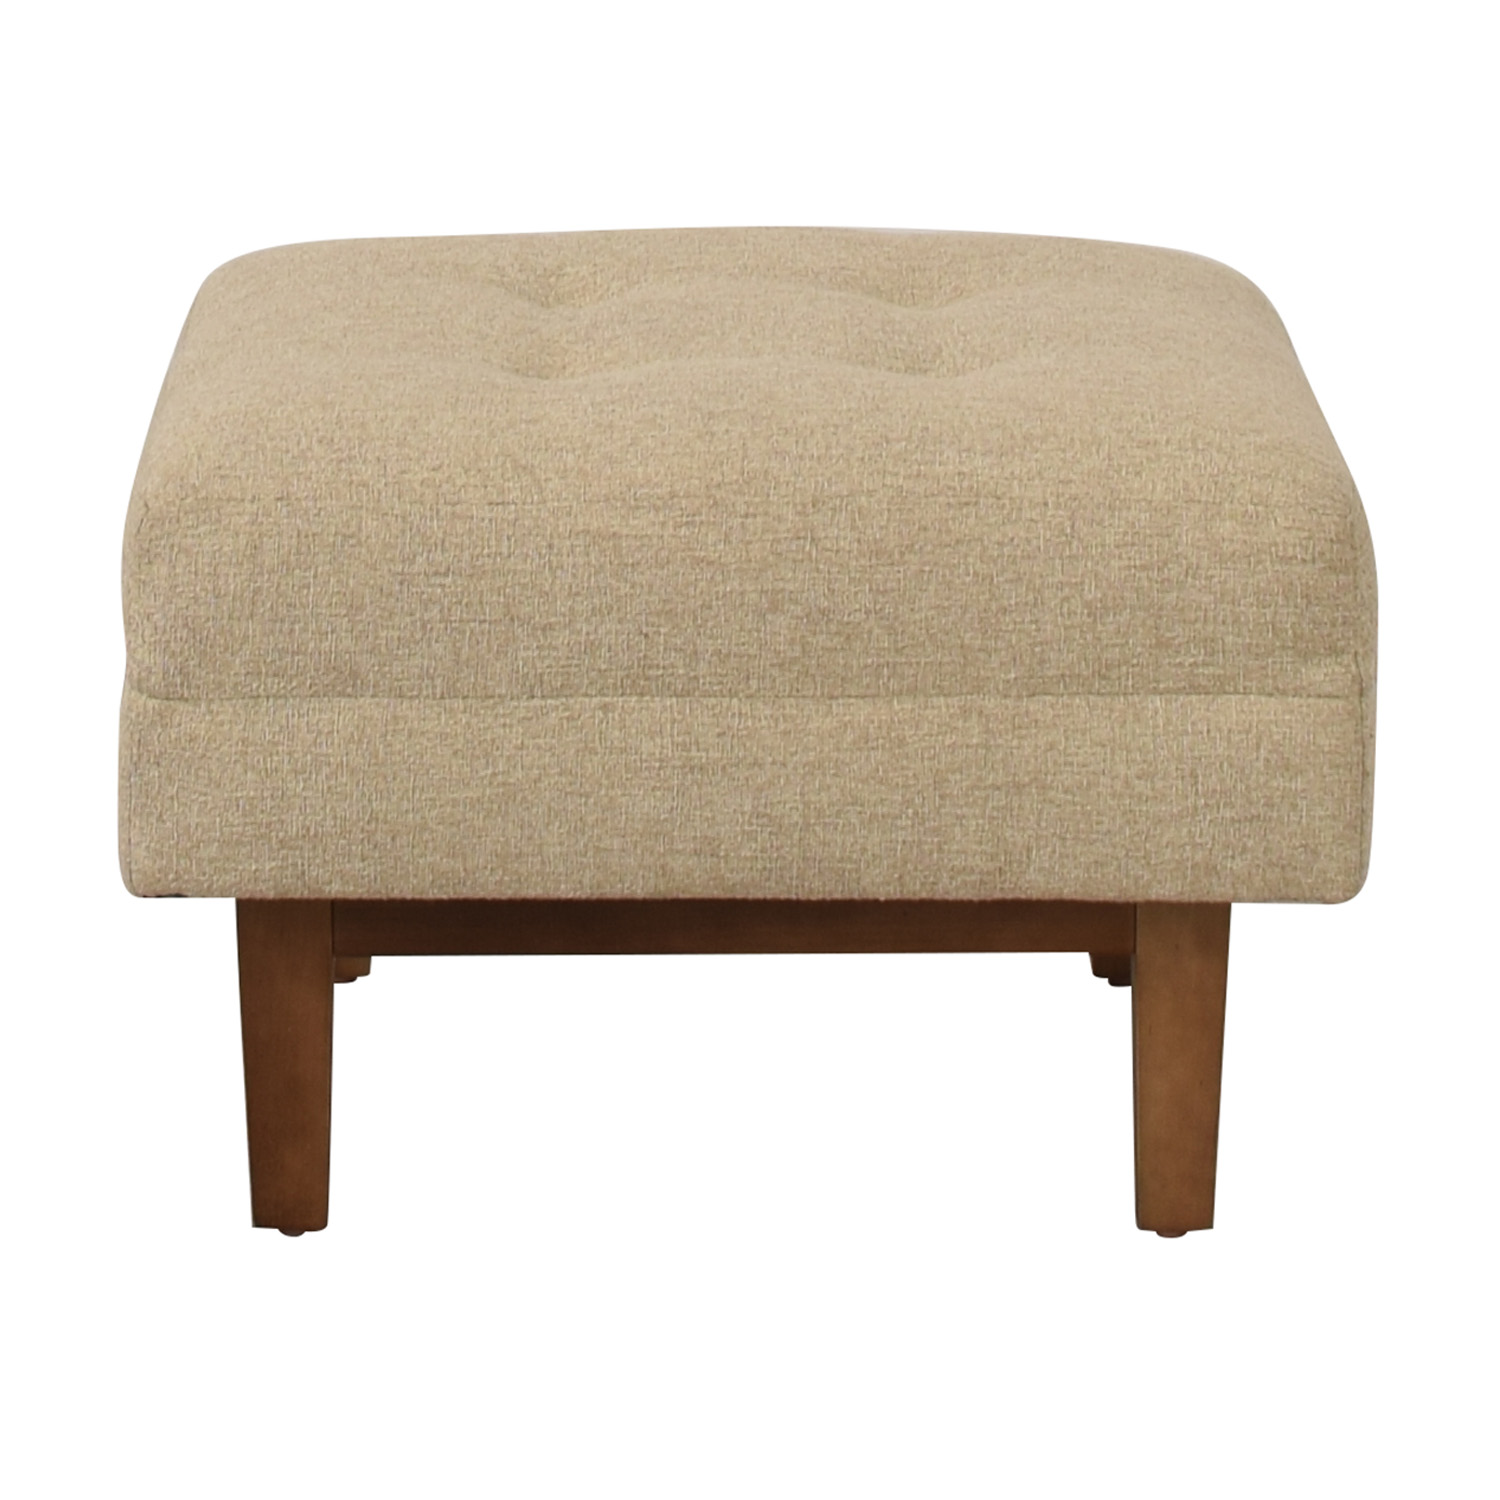 Rowe Furniture Ethan Beige Tufted Ottoman